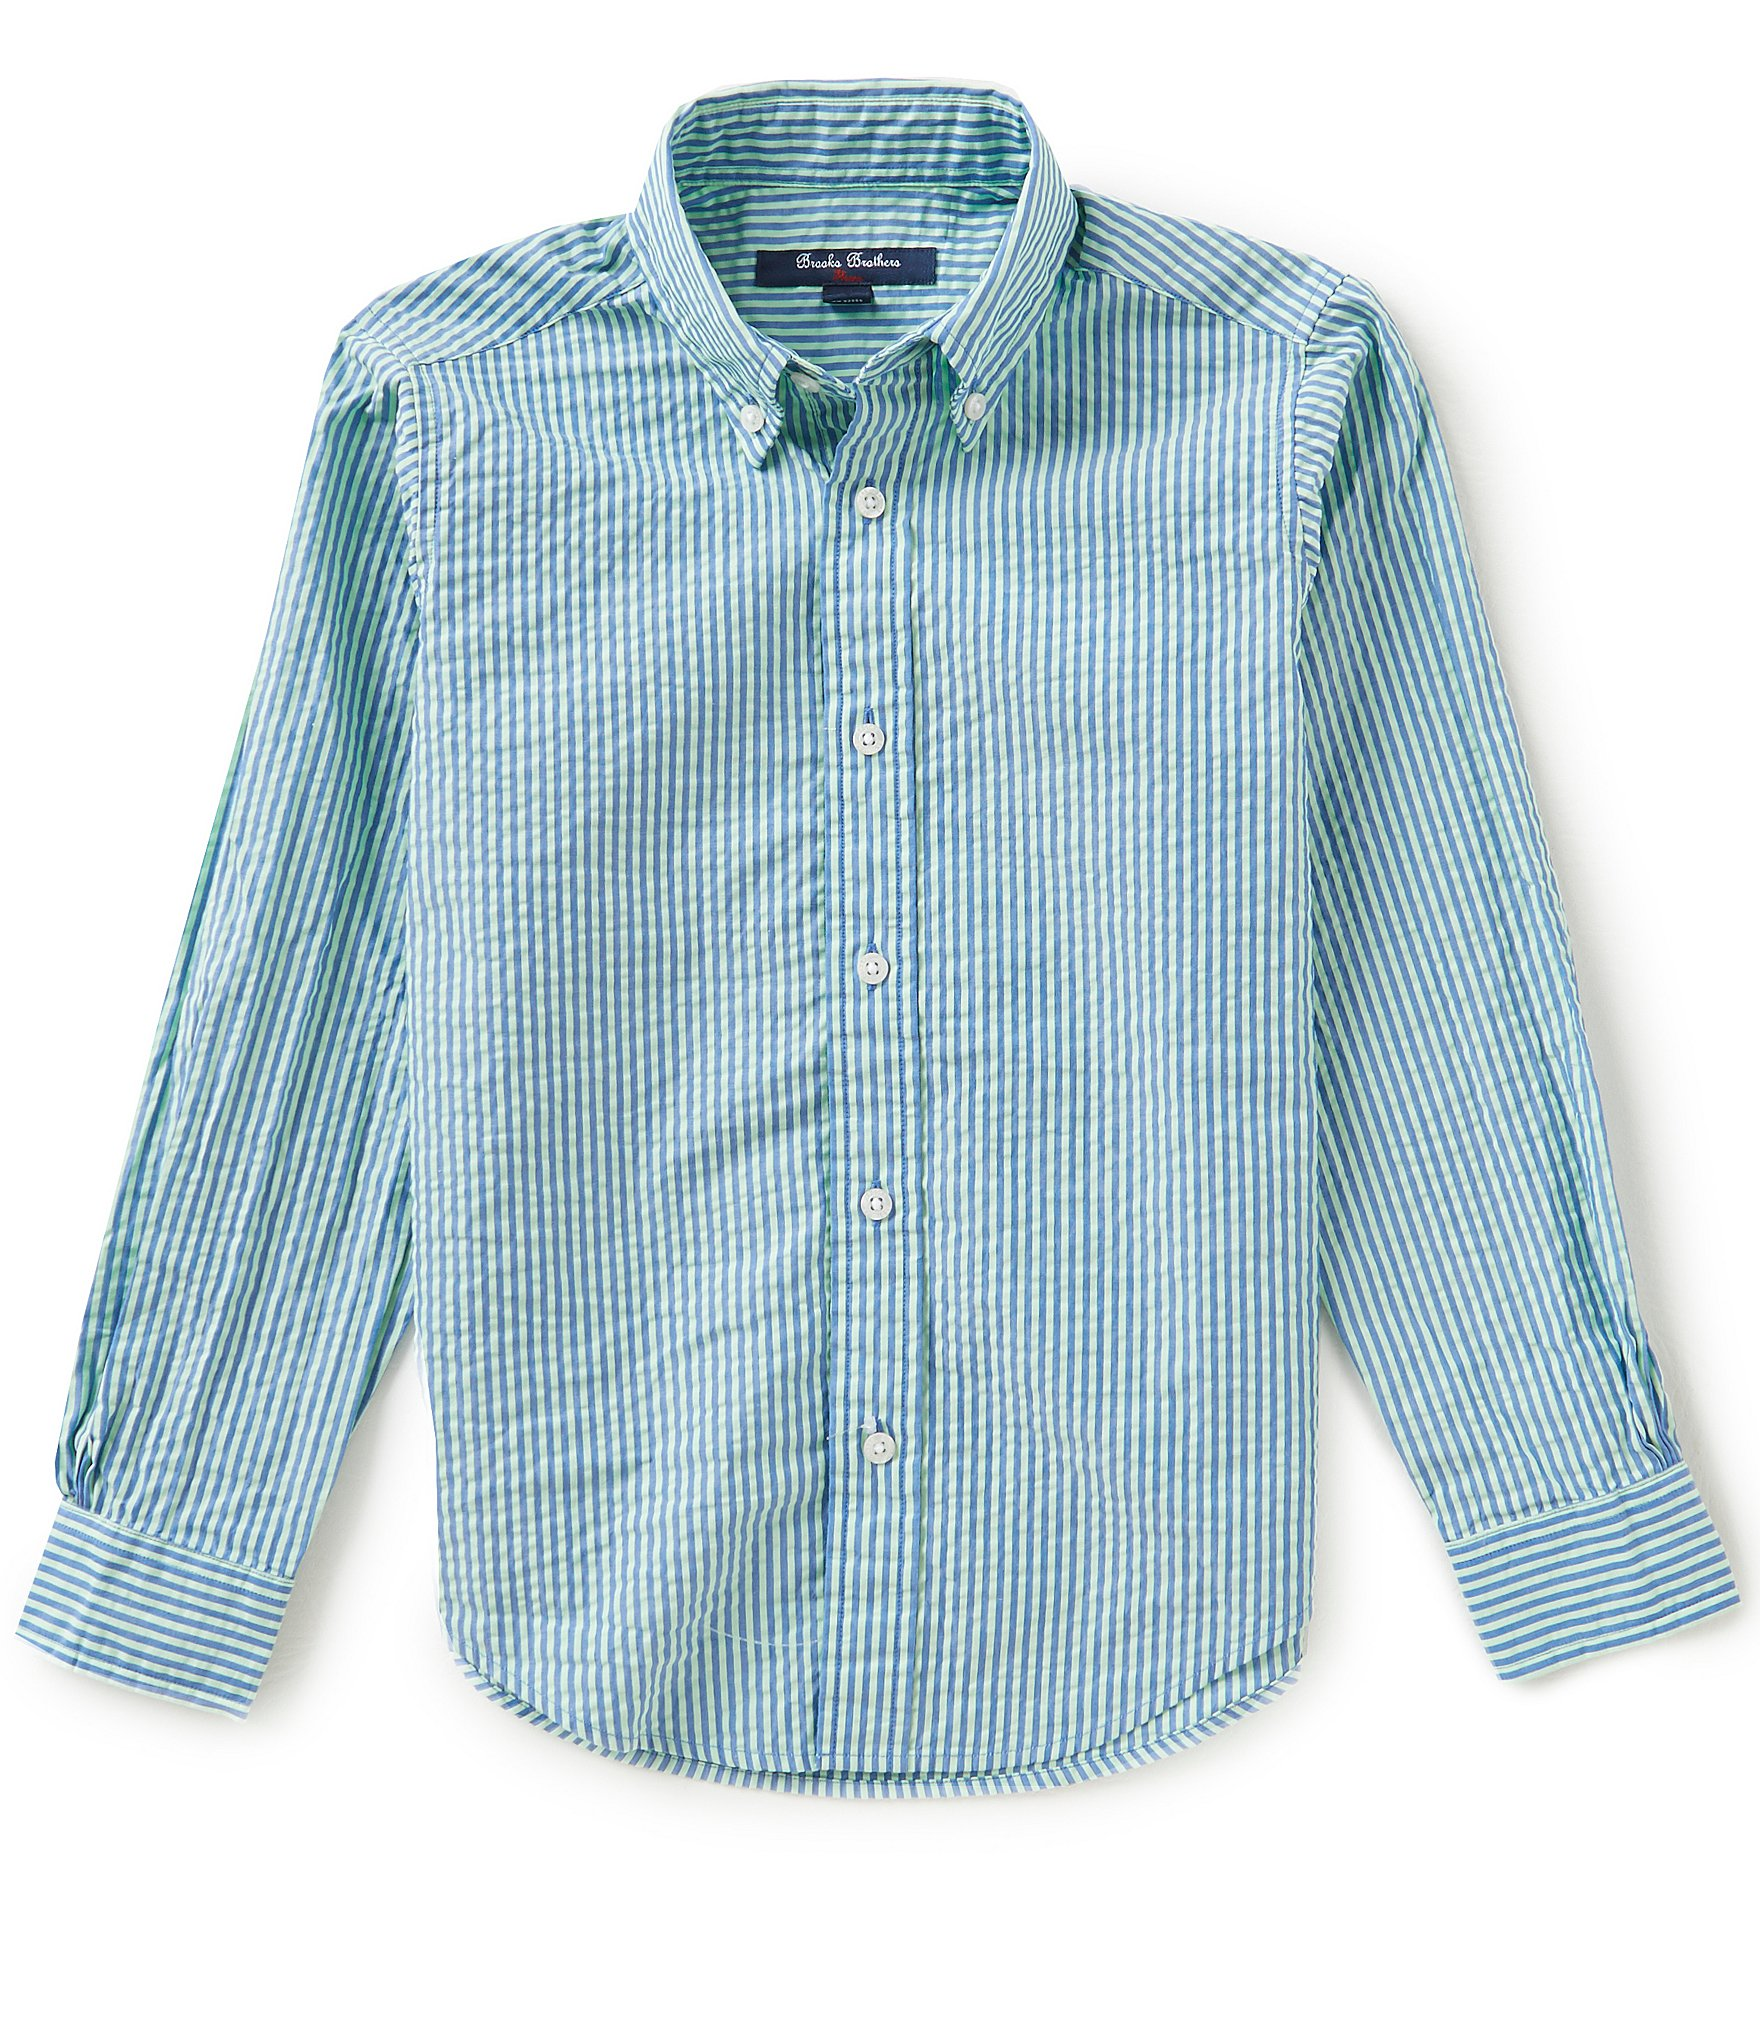 Brooks brothers little big boys 4 20 striped seersucker for Brooks brothers boys shirts